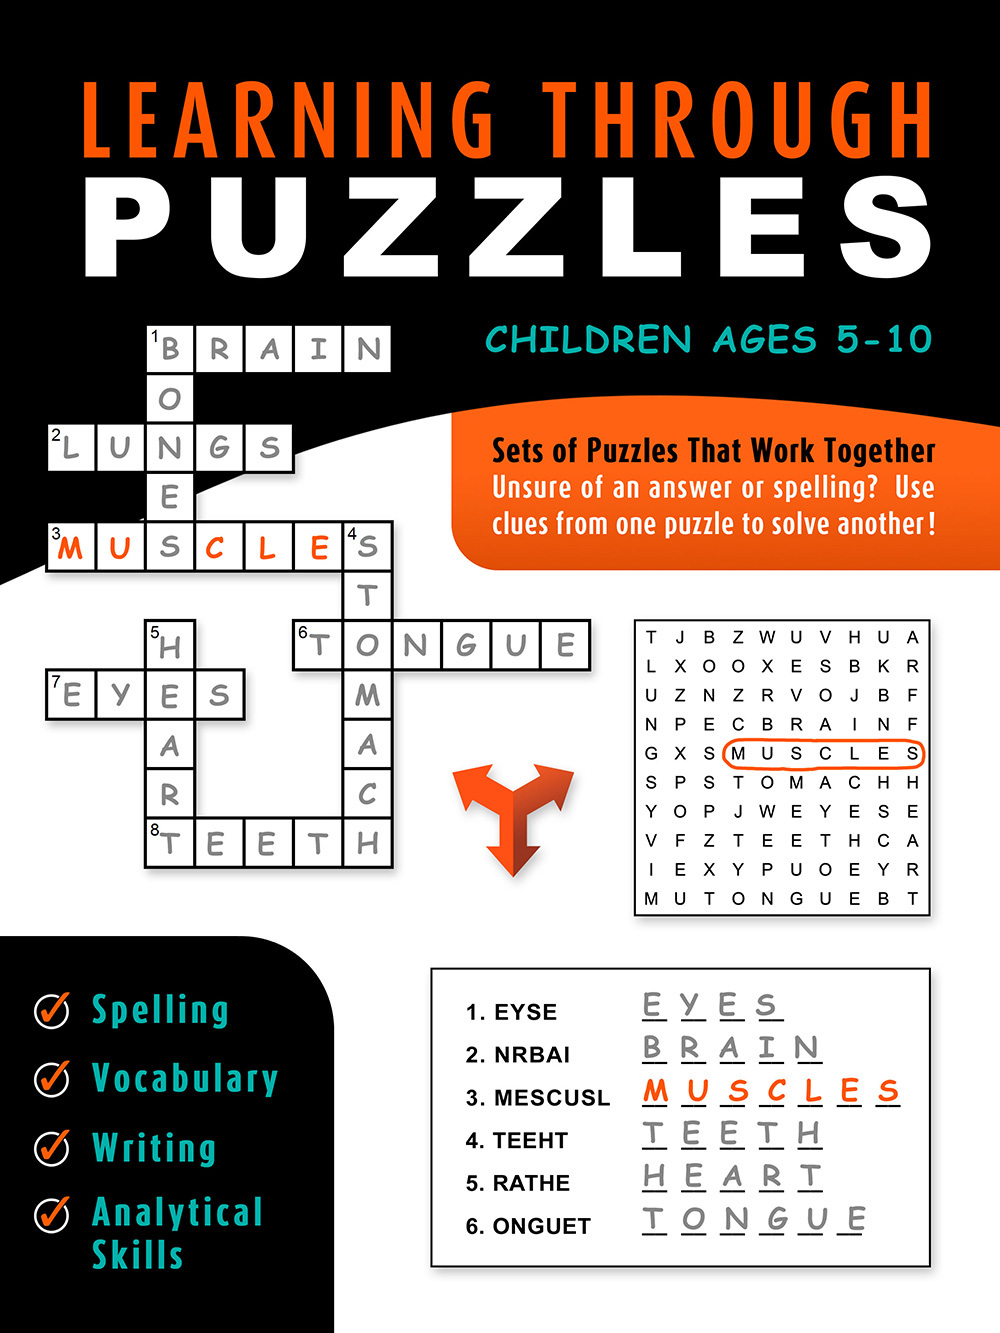 Learning Through Puzzles: A Children's Activity Book with a Problem Solving Twist - Featuring Crossword Puzzles, Word Searches & Word Scrambles